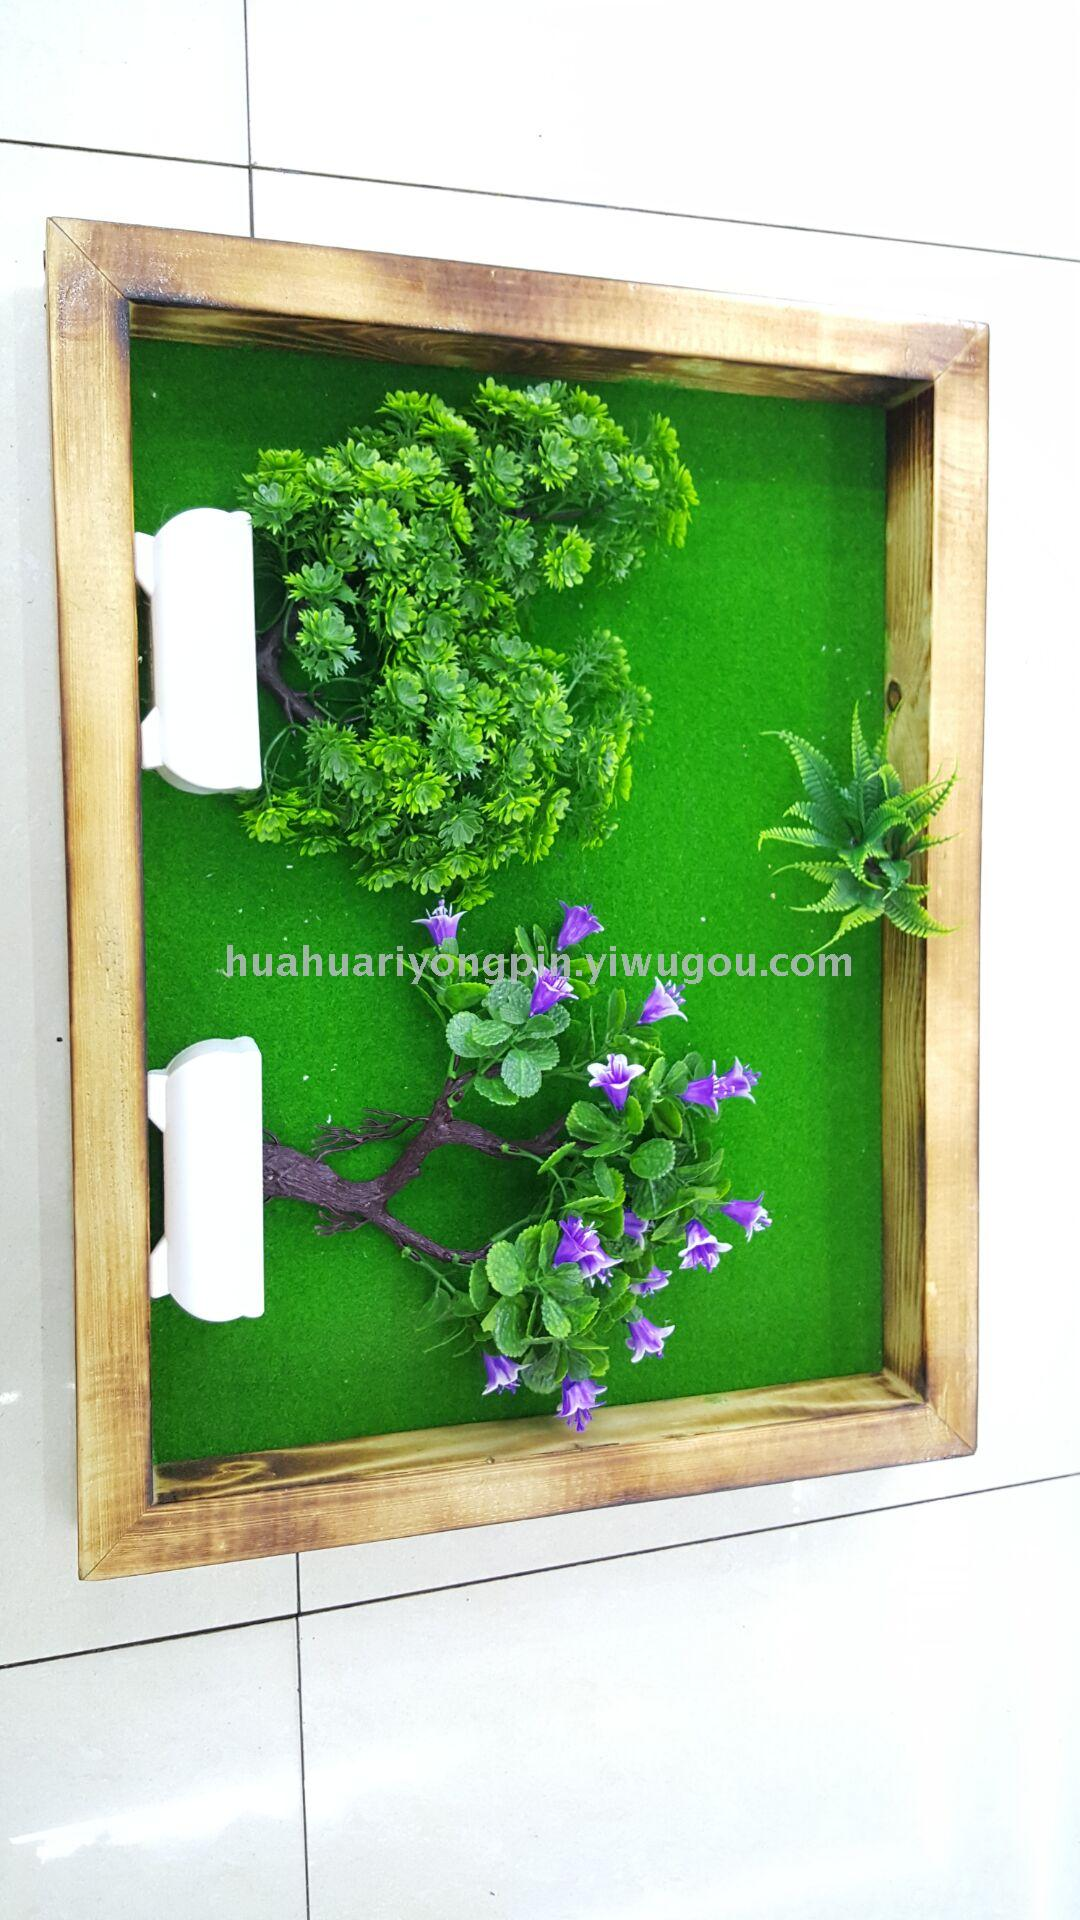 Supply New Wall Decoration Items Simulation Plant Wall Hanging Bonsai Wood Flowers Frame Flowers